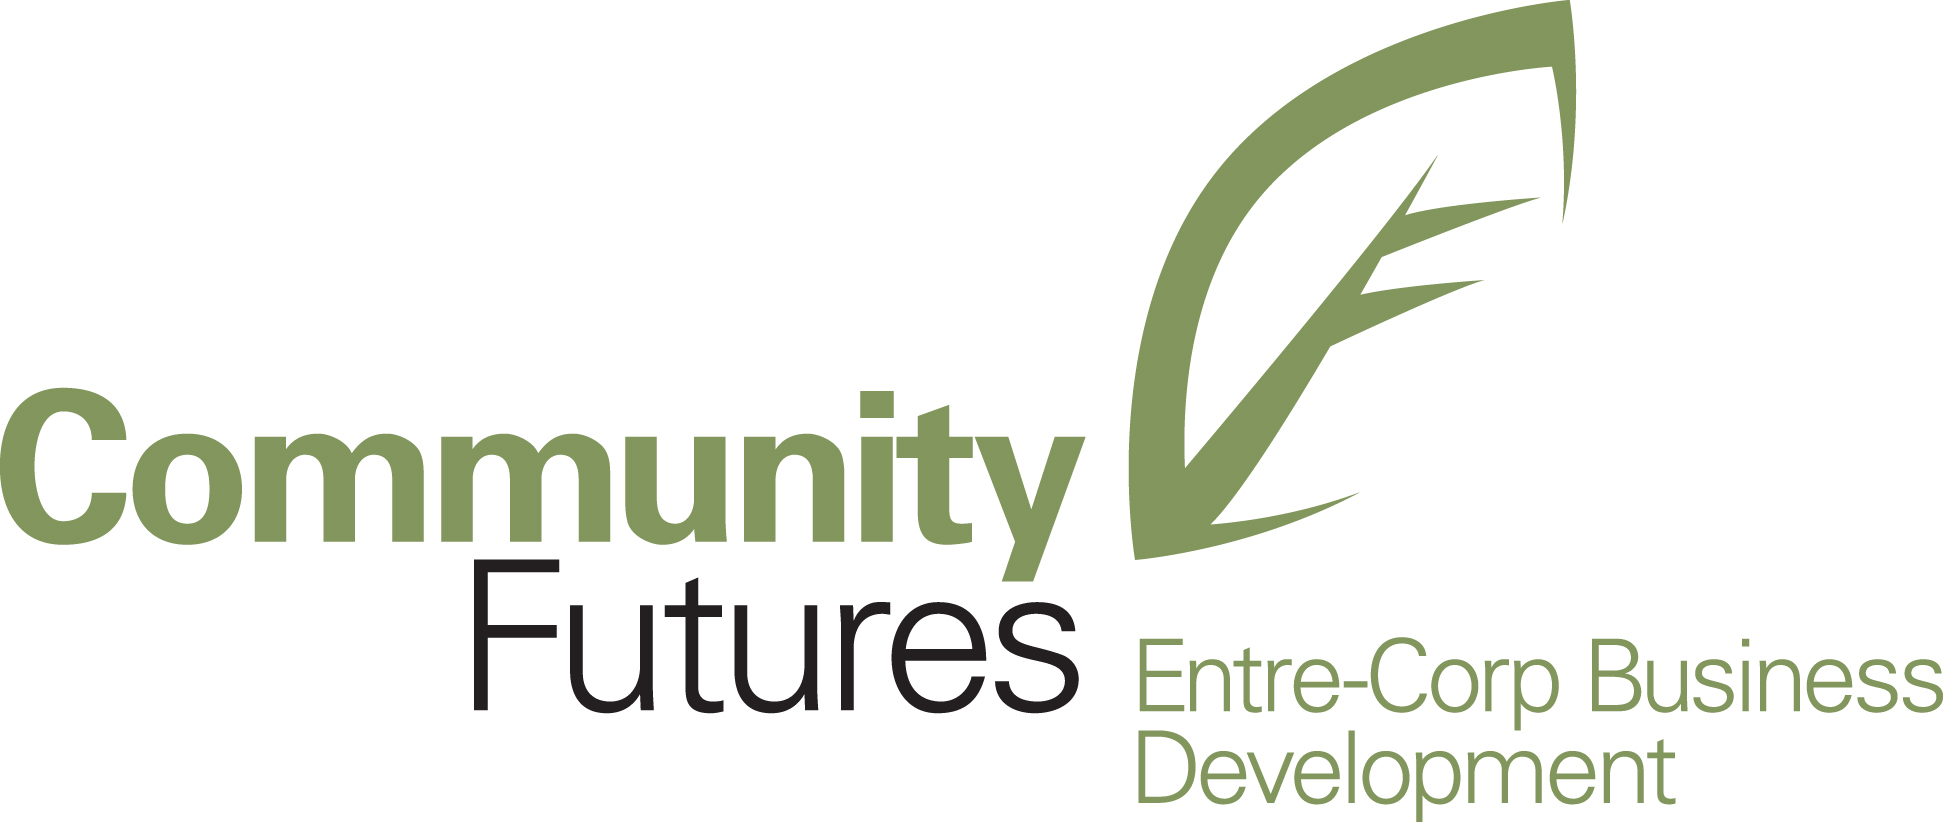 Community Futures Entre-Corp is a non-profit community-owned organization known for supporting entrepreneurs. Business advisory, lending and rural economic development.